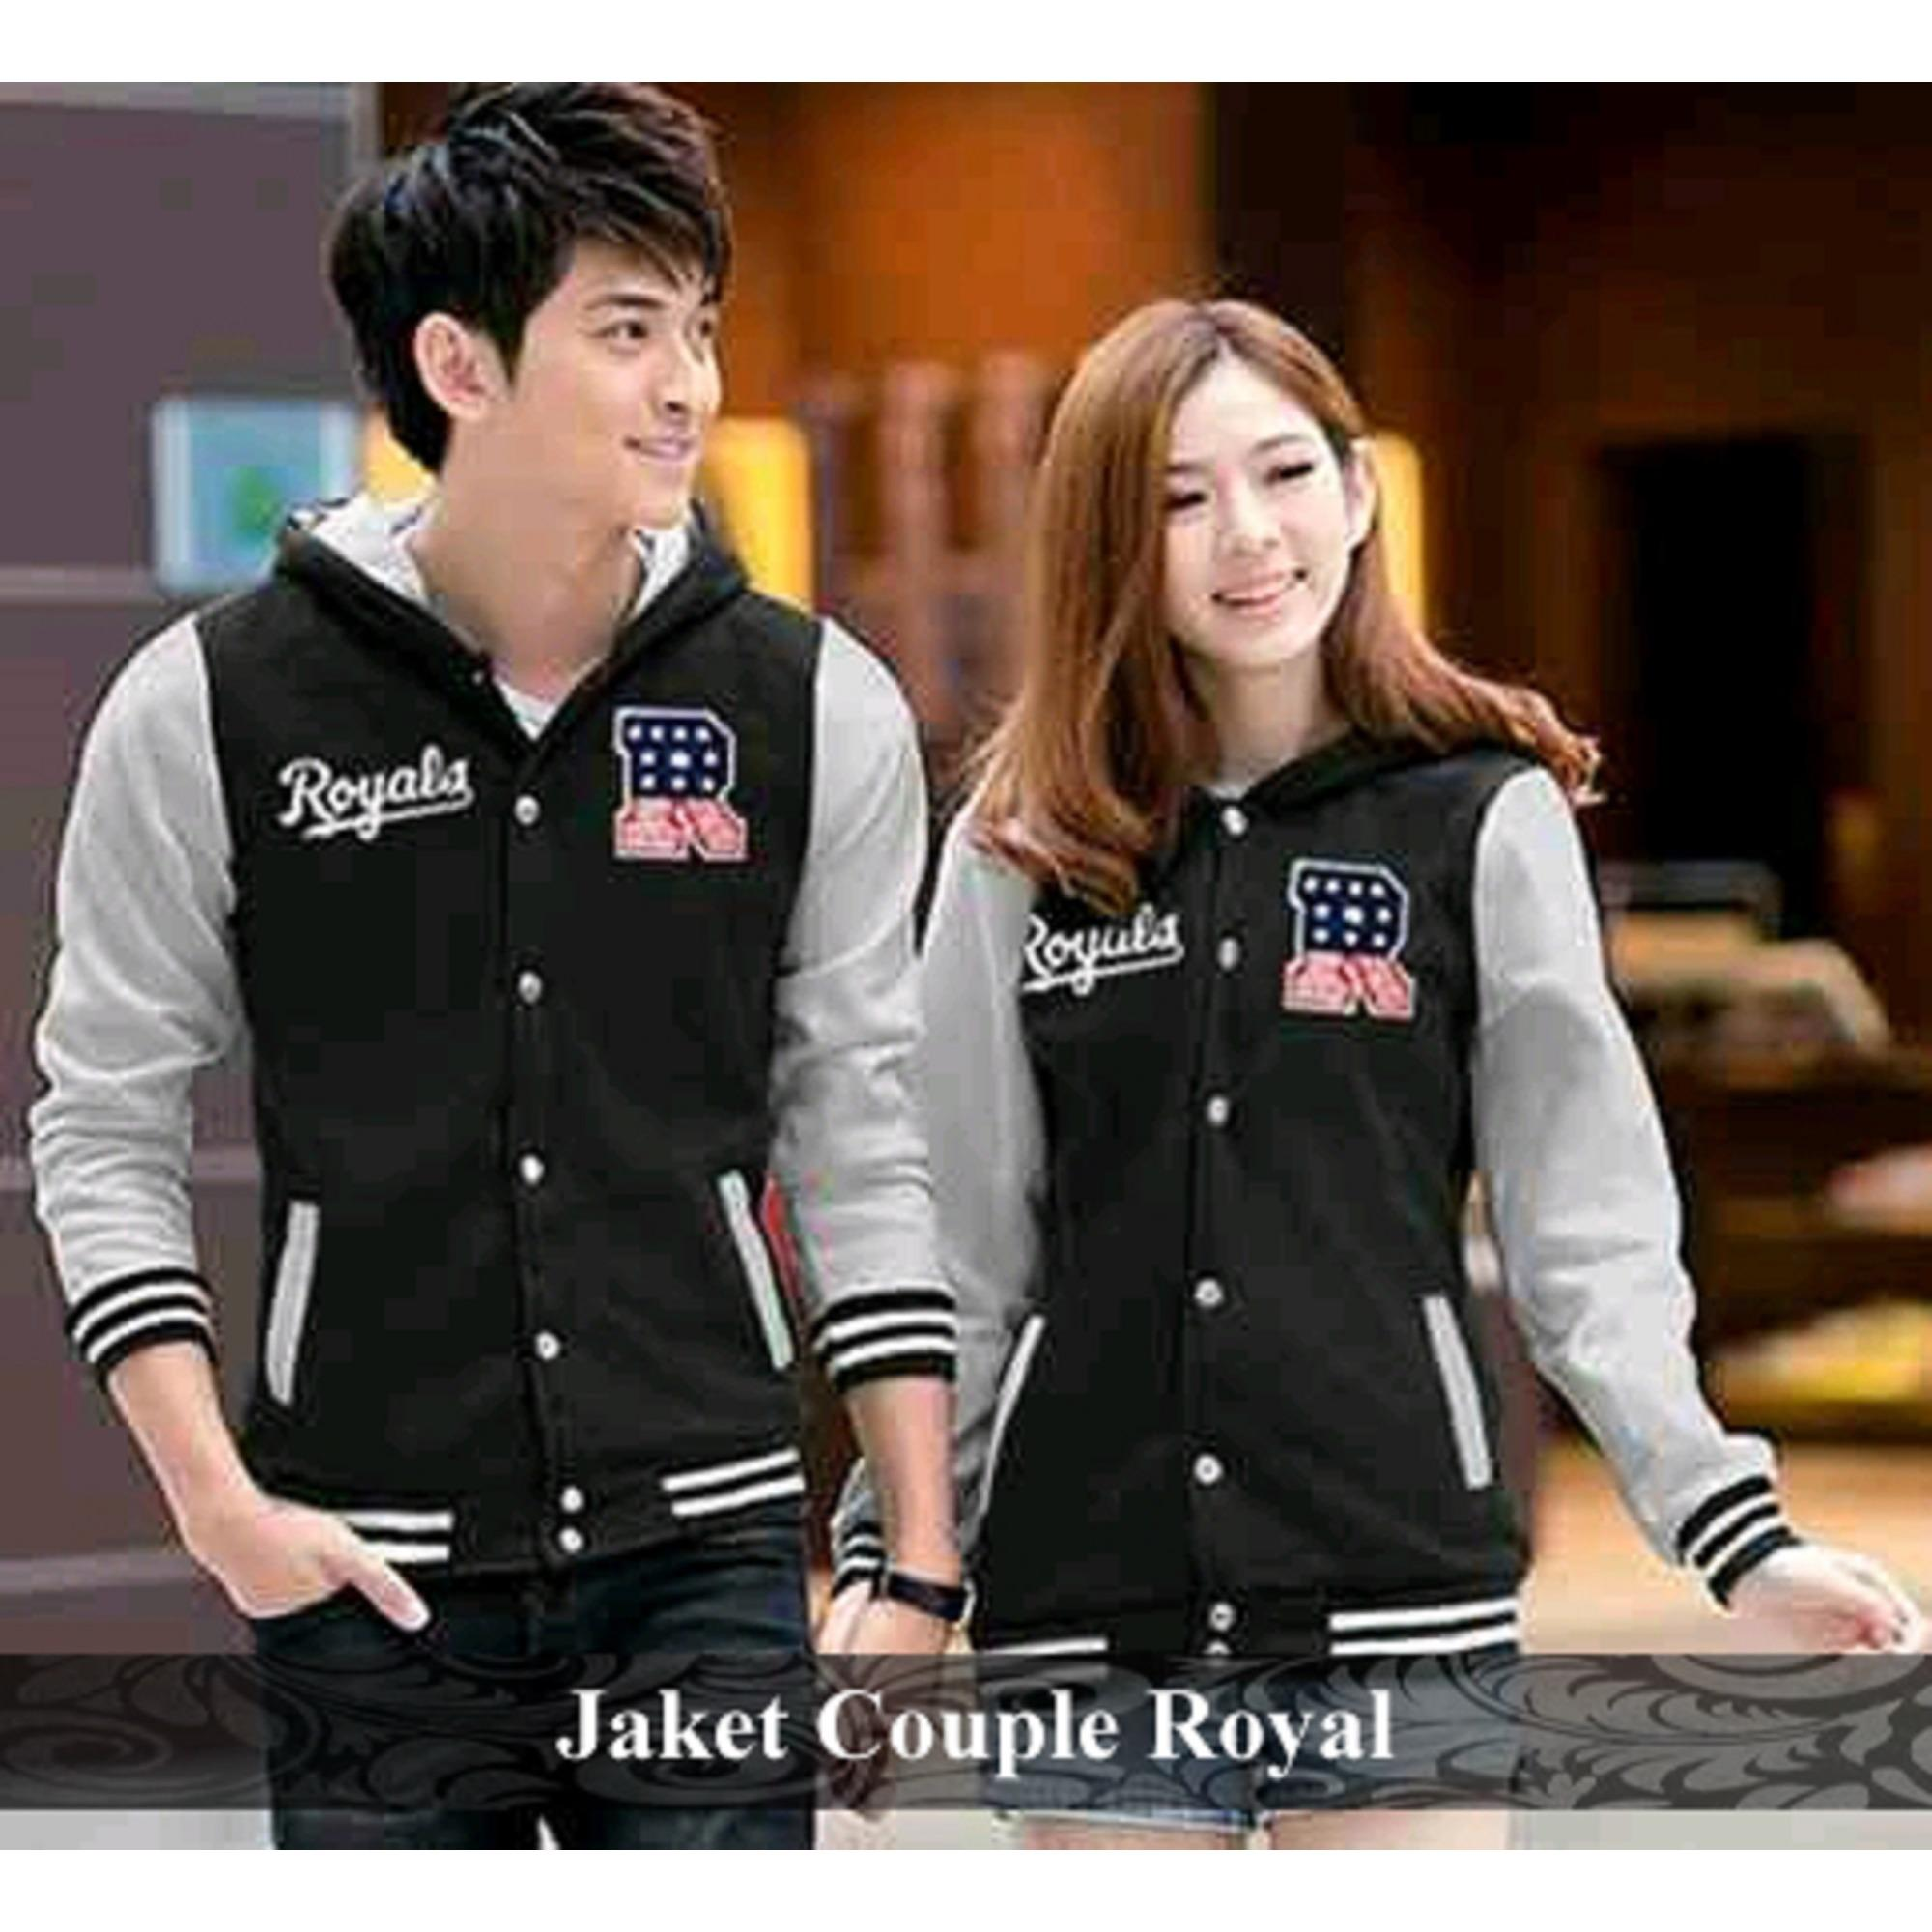 Jual Couple Jaket - Jaket Pasangan Murah - Jaket Couple Royal